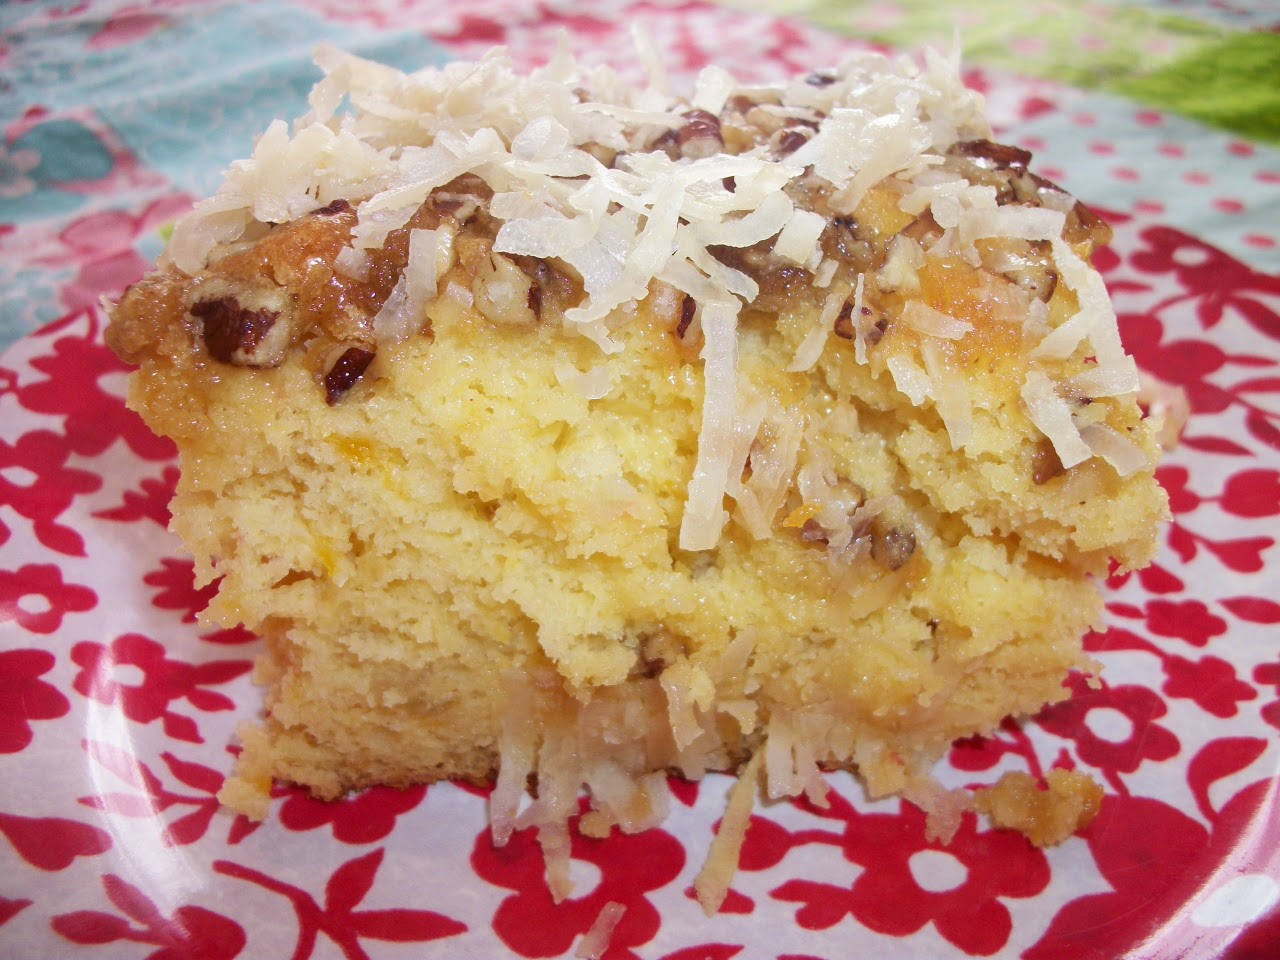 http://collettaskitchensink.blogspot.com/2015/04/in-kitchen-banana-coconut-crunch-cake.html